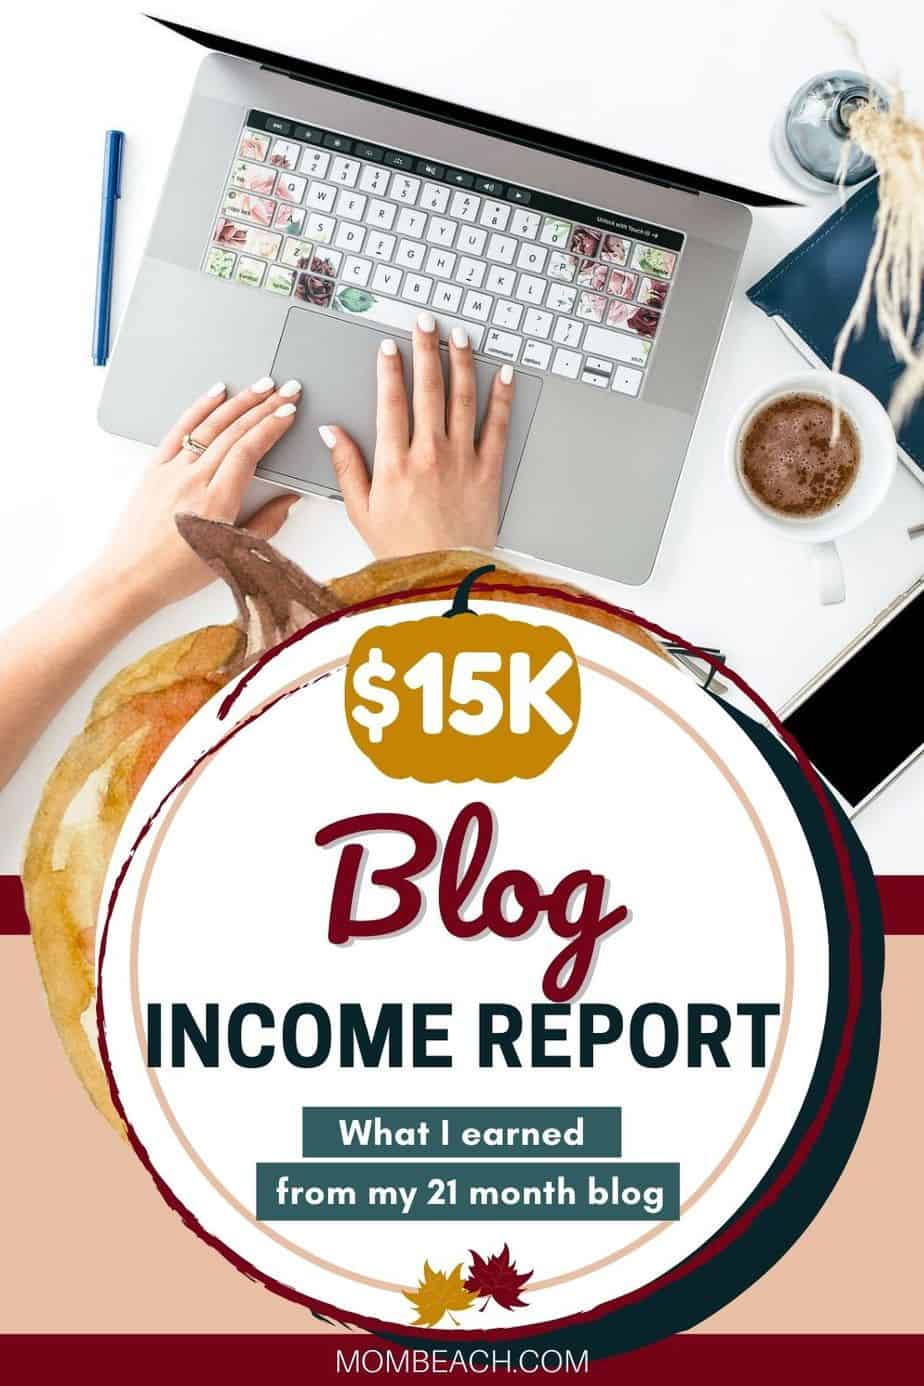 Check out my blog income report from August 2020. This is what I earned my 21st month of blogging. Can my blog drink yet? Just kidding! LOL! I love helping beginner bloggers so check out my tips and tricks on starting your own blog. You can be a successful blogger too. It just takes time to learn. #blogincomereport #blogging #momblog #bloggingforbeginners #blogging101